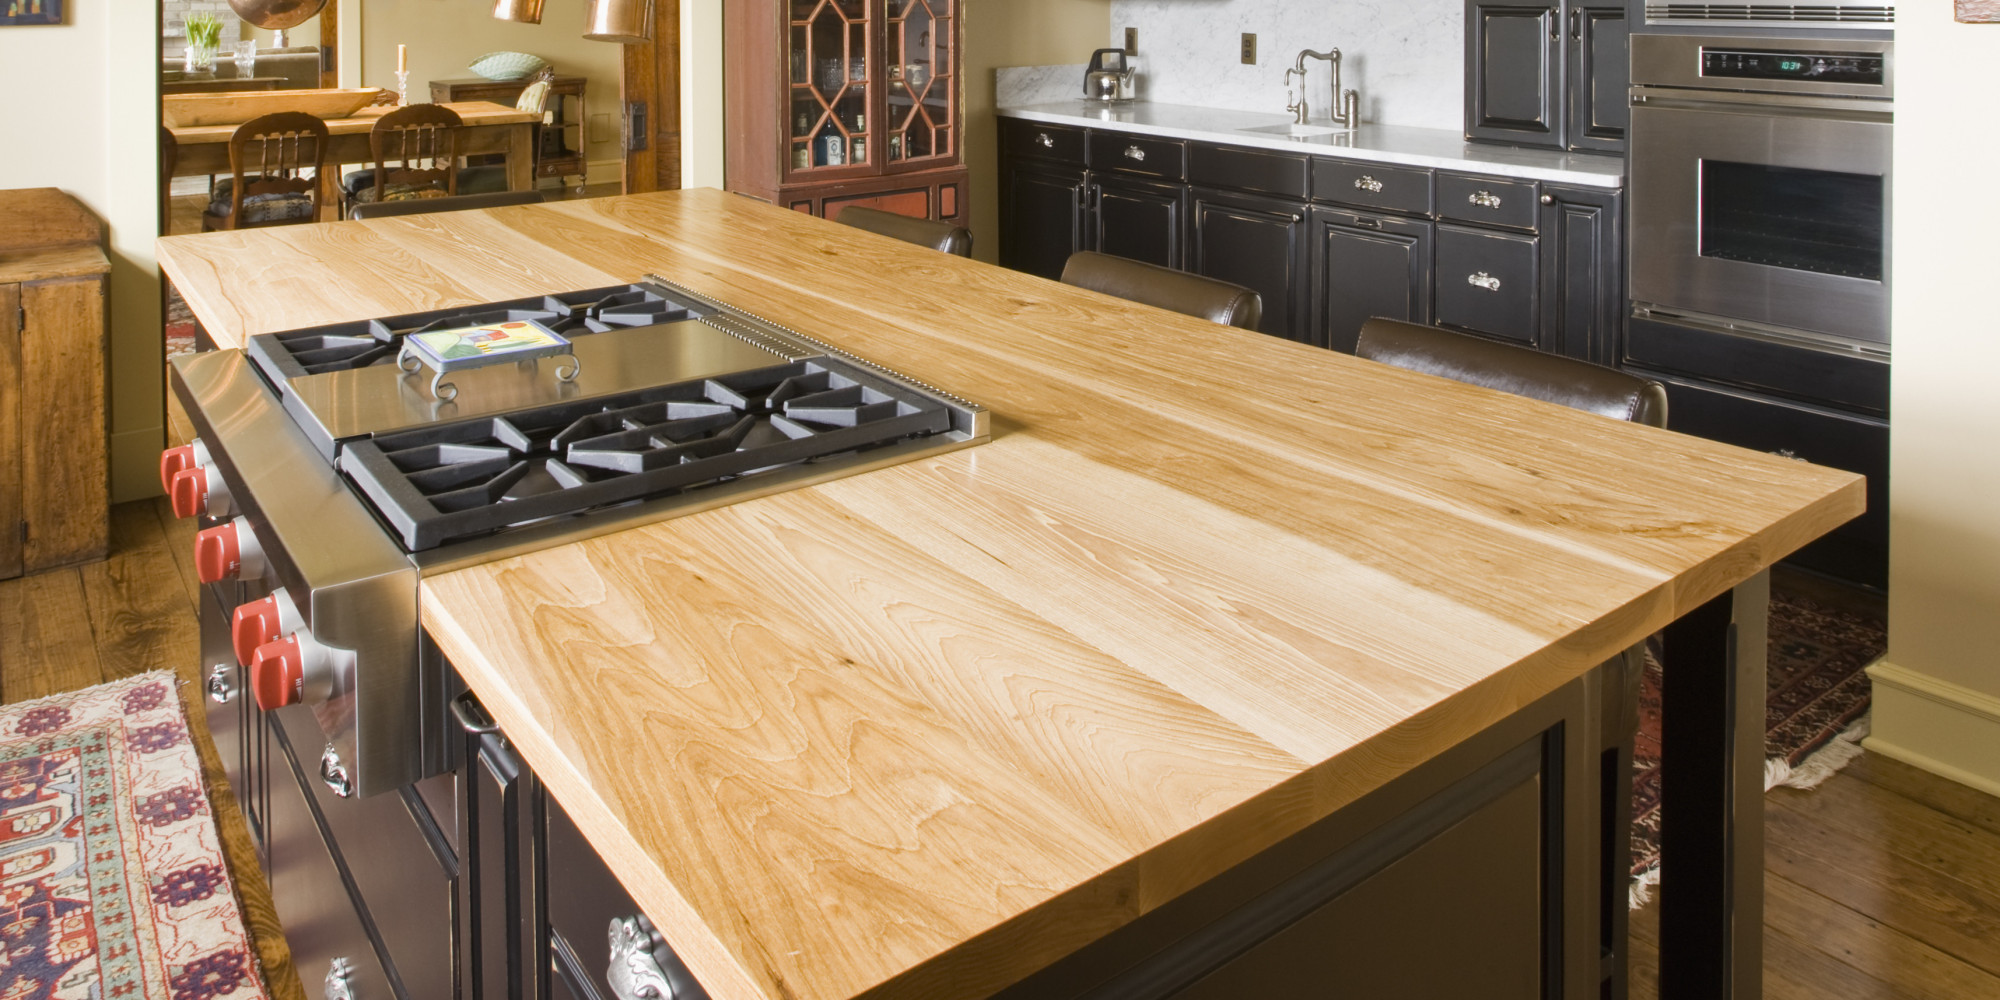 5 Unique Kitchen Islands To Consider Right Now